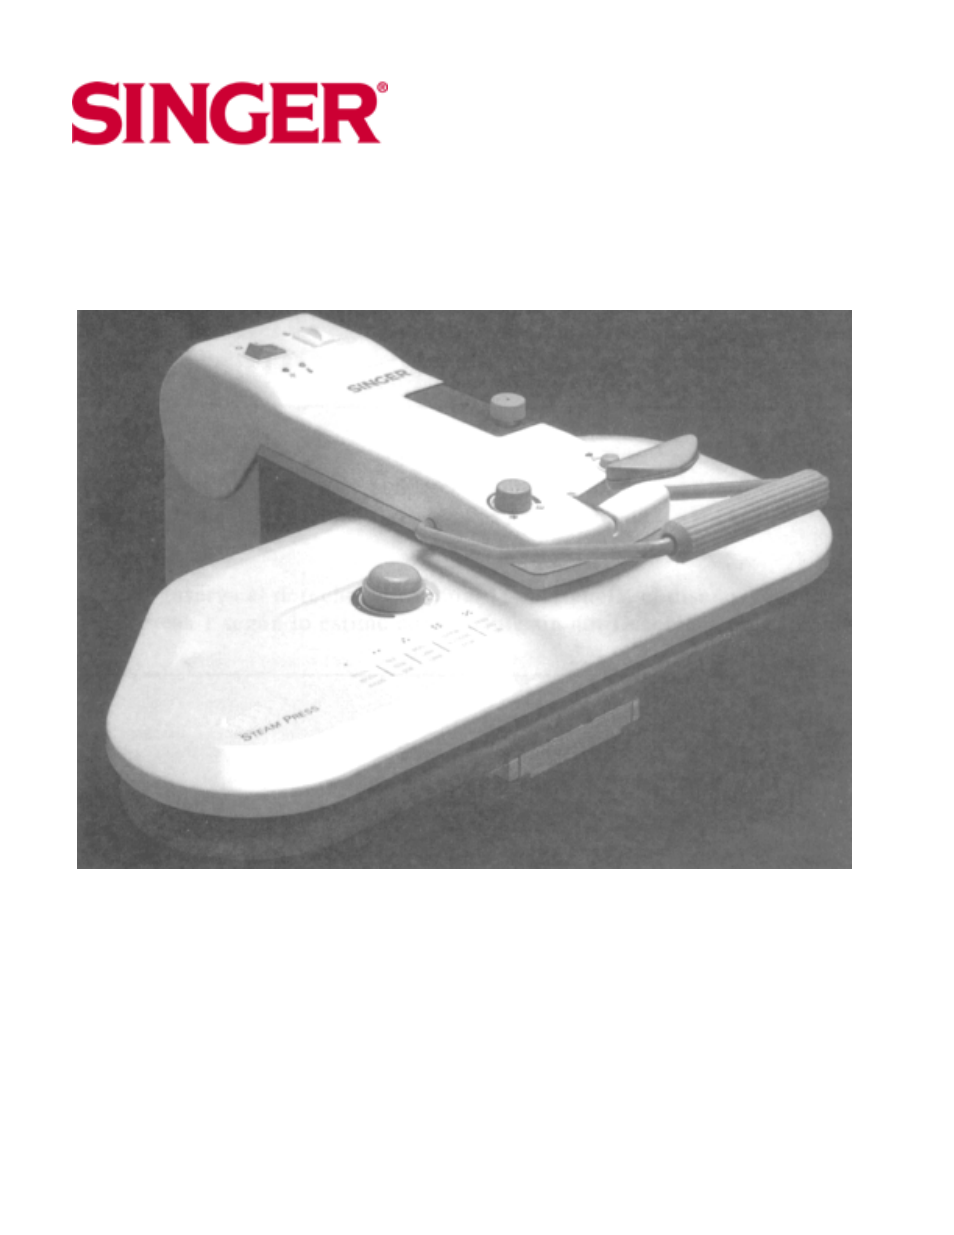 singer csp1 pro6s compact steam press user manual